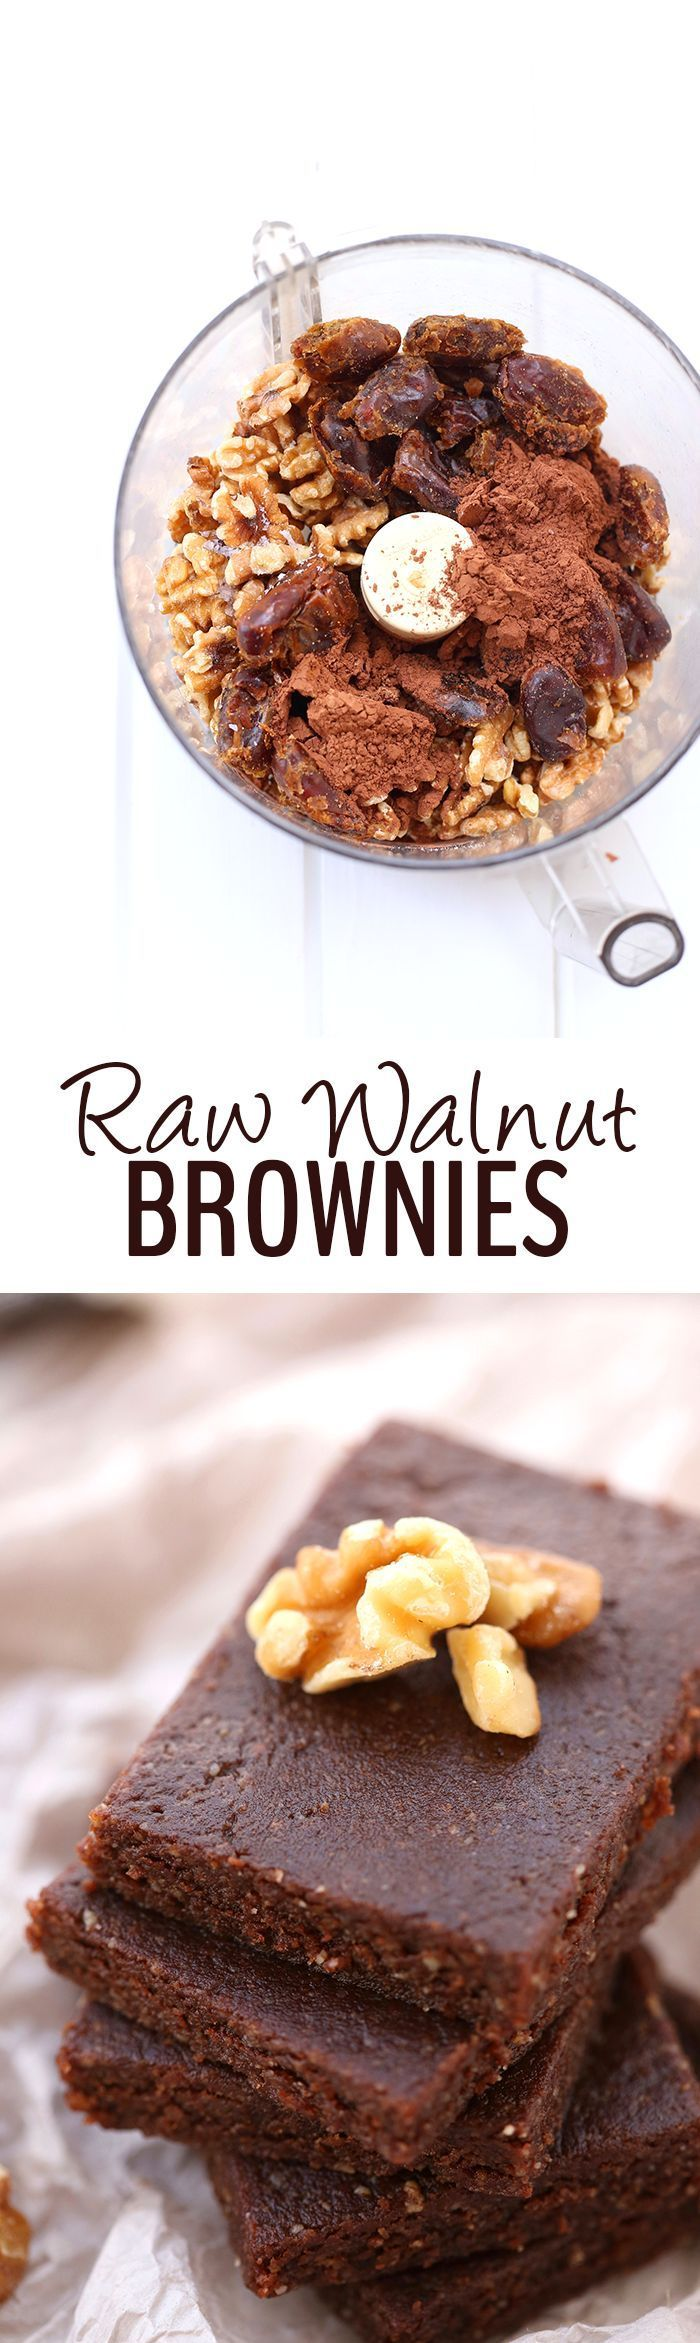 4 ingredients is all you need to make these Raw Walnut Brownies. They're gluten-free, vegan, paleo and refined-sugar-free but also taste incredible! Plus they take 5 minutes to whip up. (Bake Face)